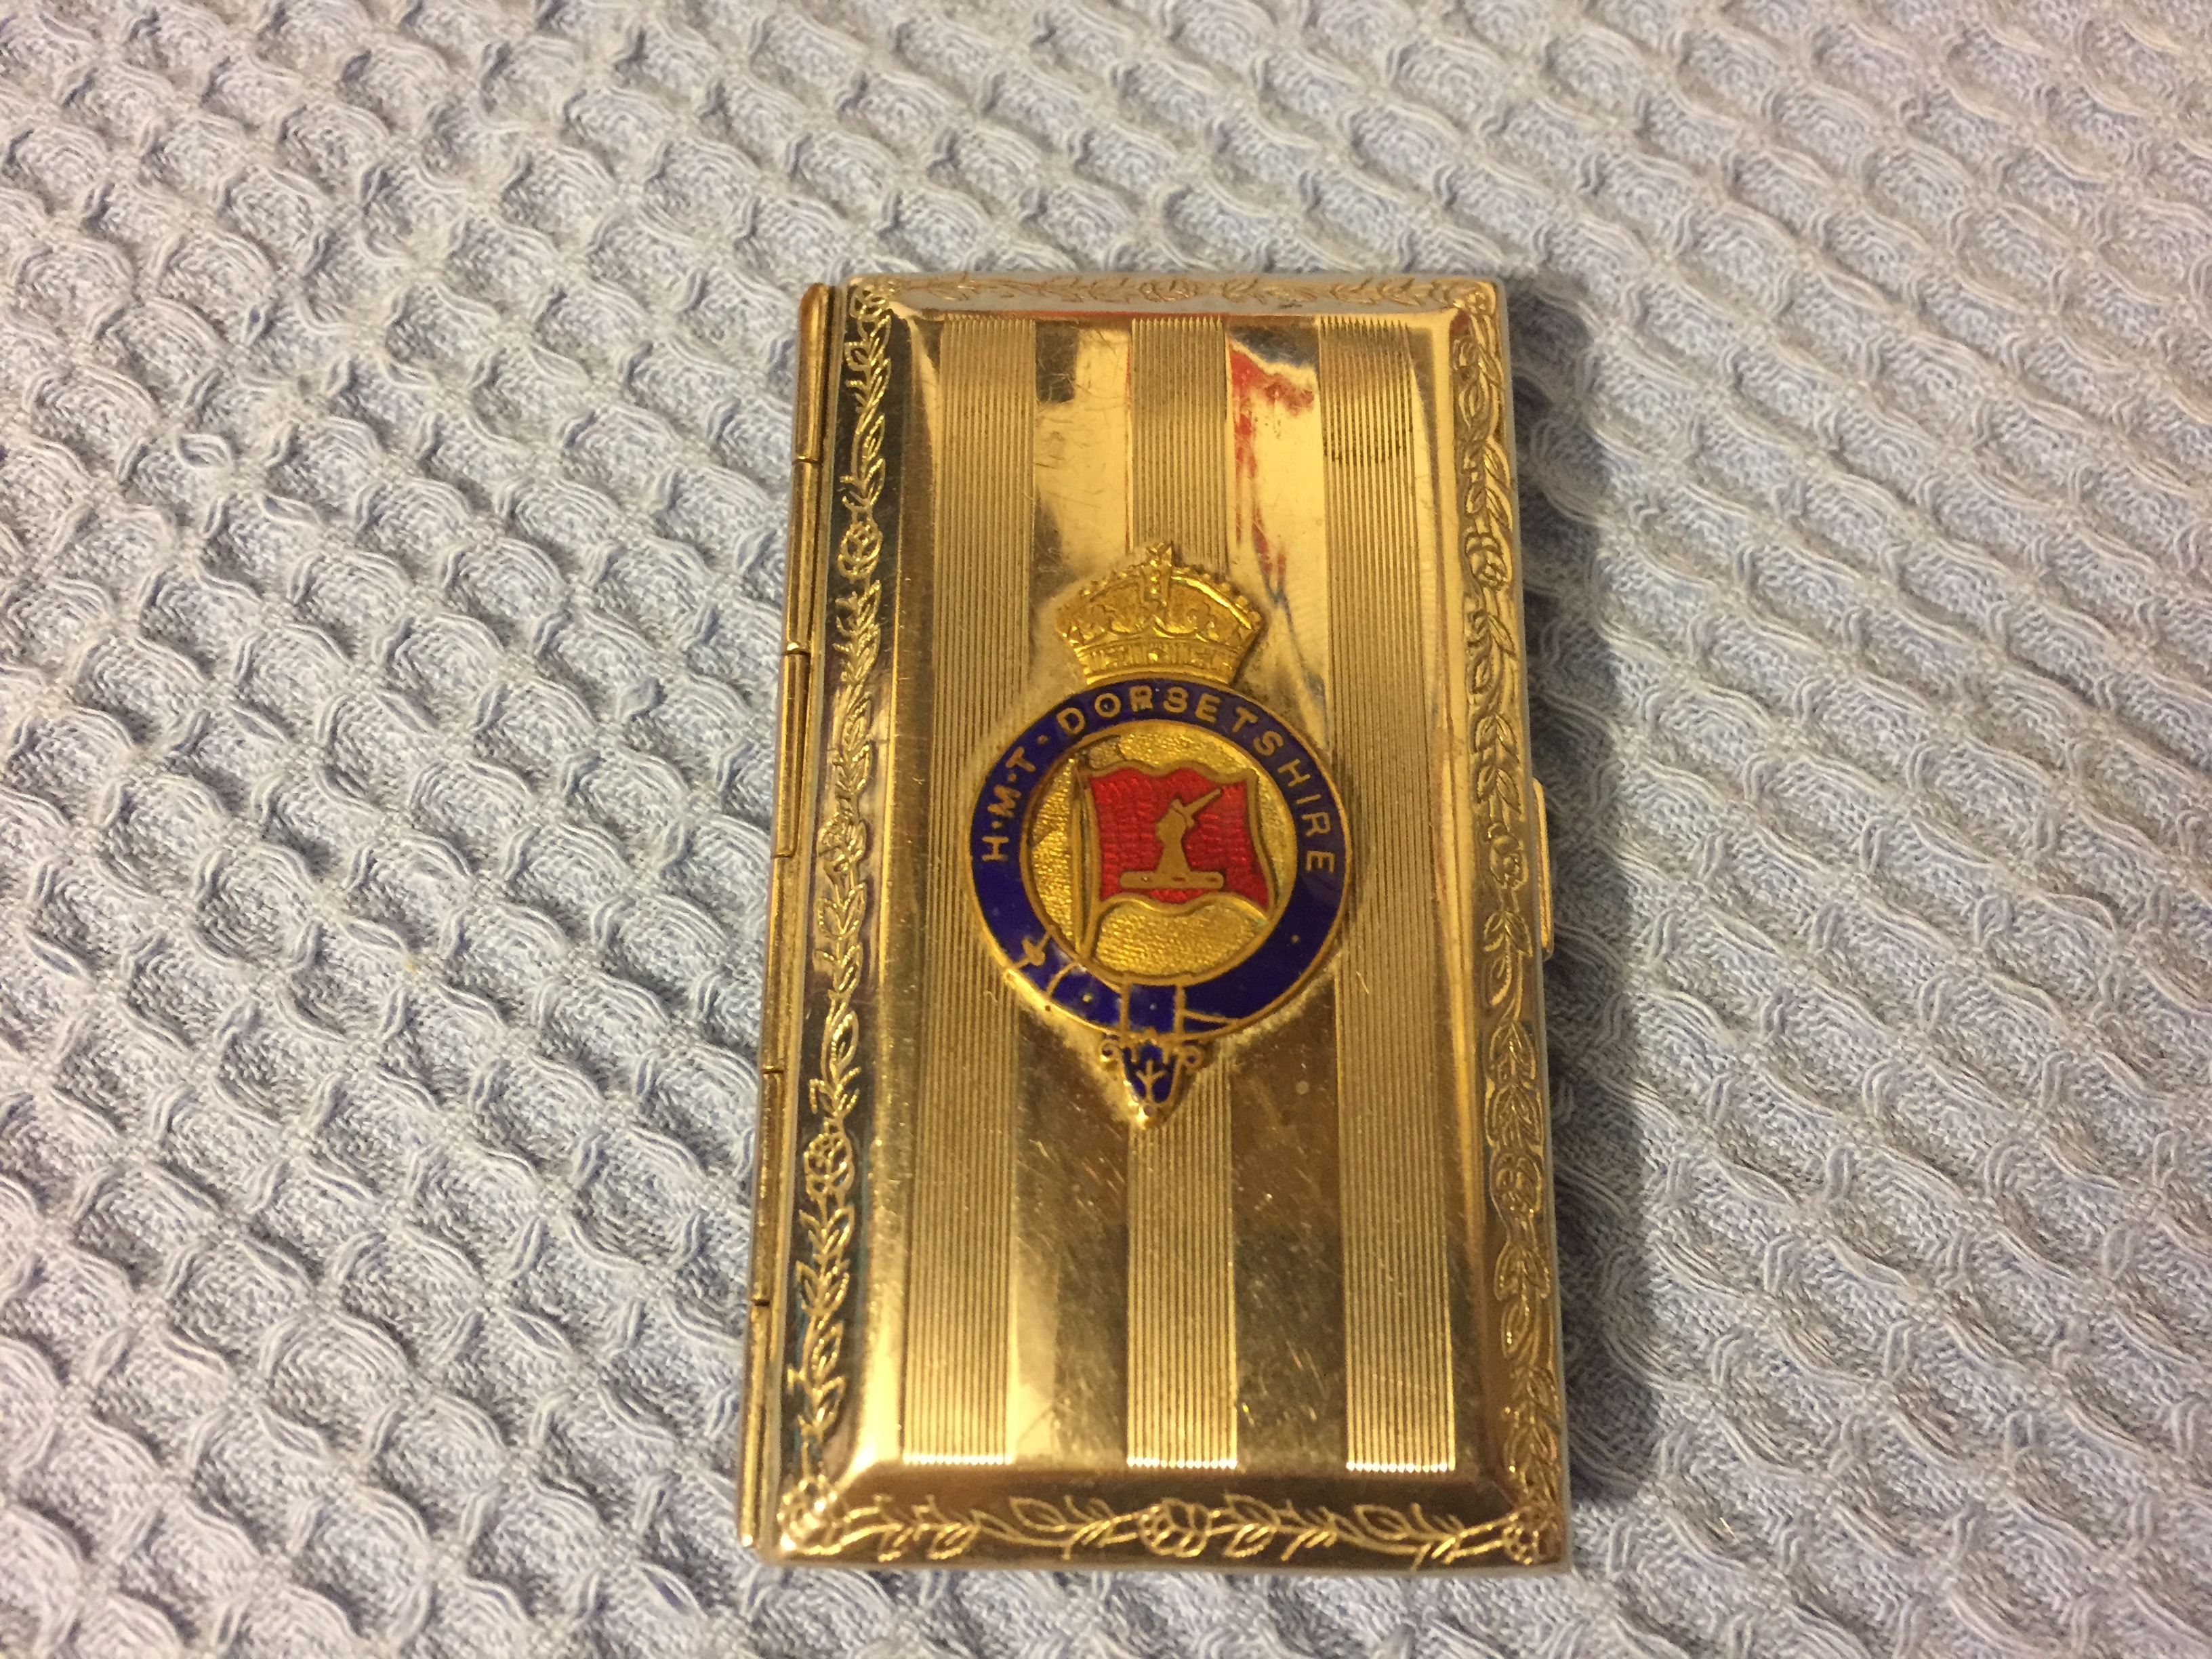 VERY VERY RARE TO FIND EARLY CIGARETTE CASE FROM THE VESSEL THE HMT DORSETSHIRE